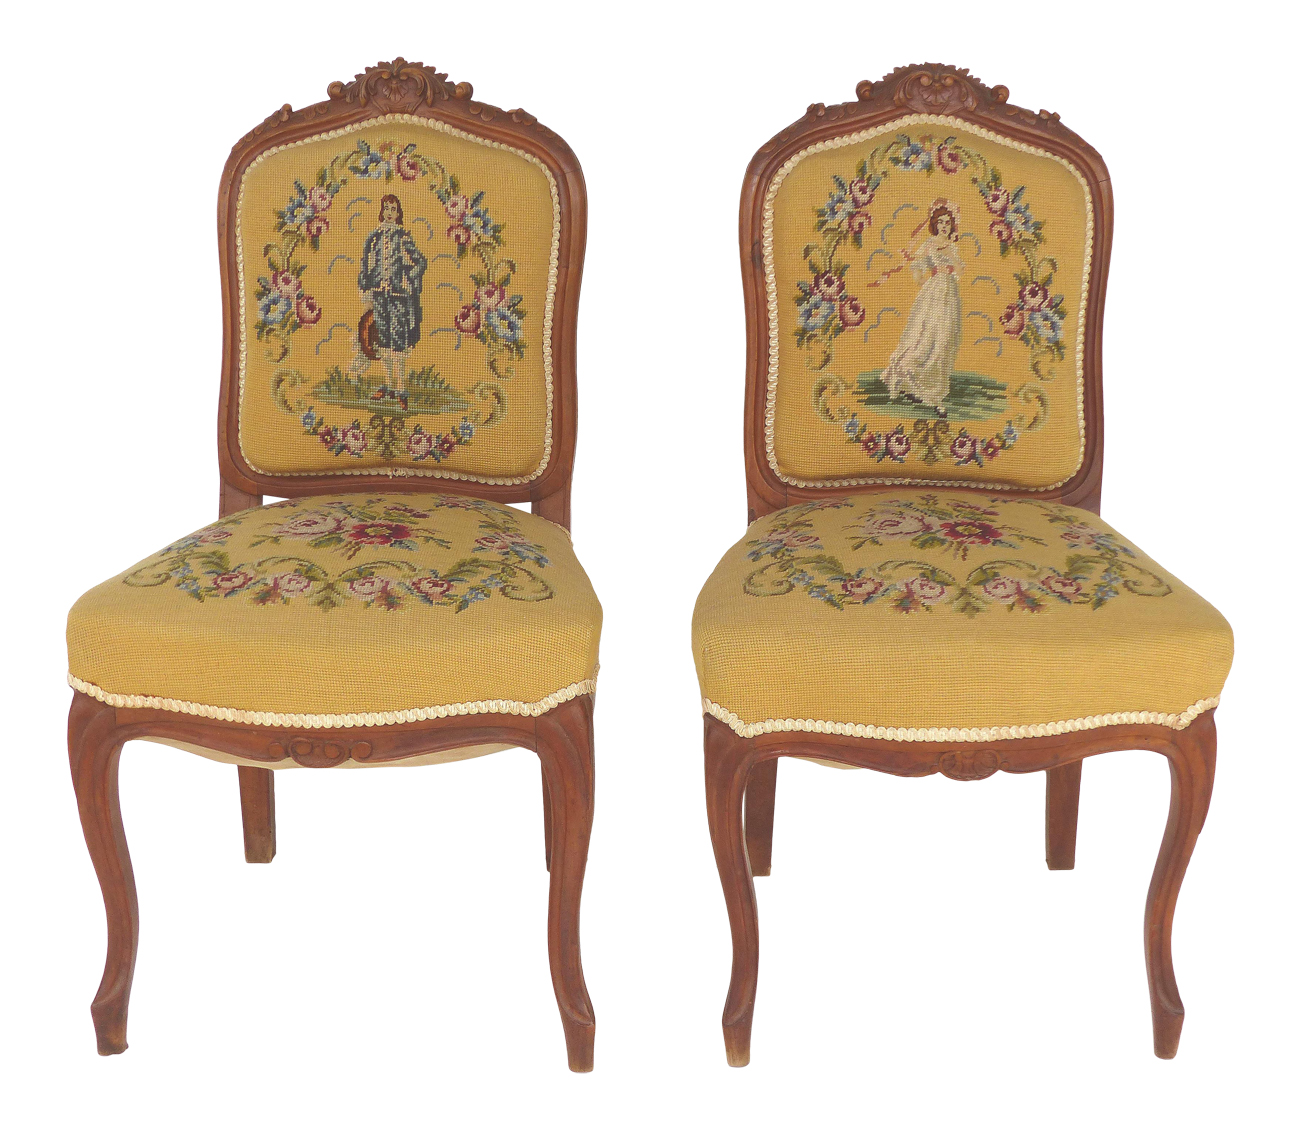 Vintage Chic Needlepoint Upholstered Side Chairs